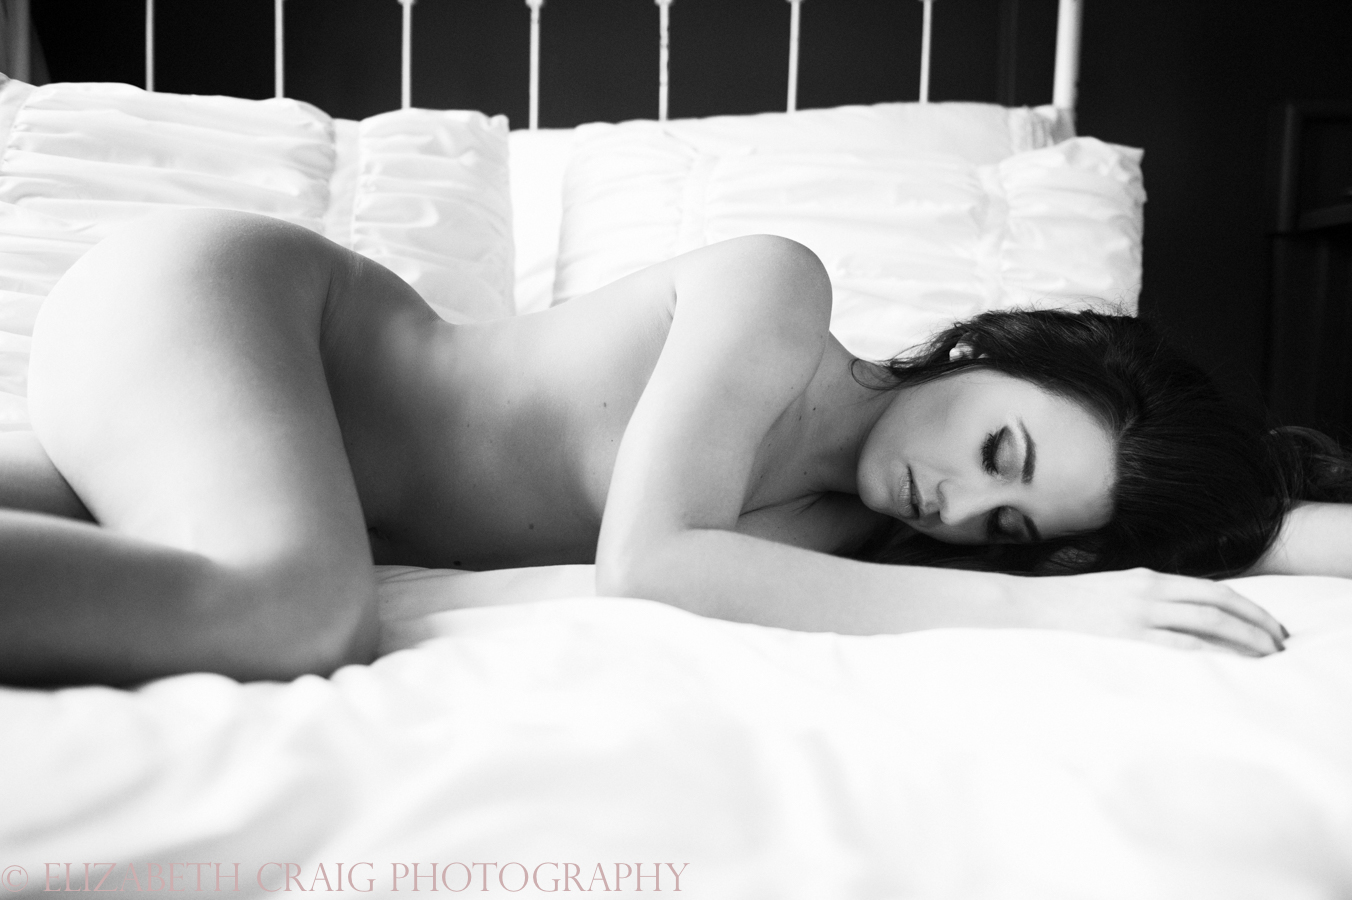 Fierce Woman | Elizabeth Craig Photography | Boudoir-0006